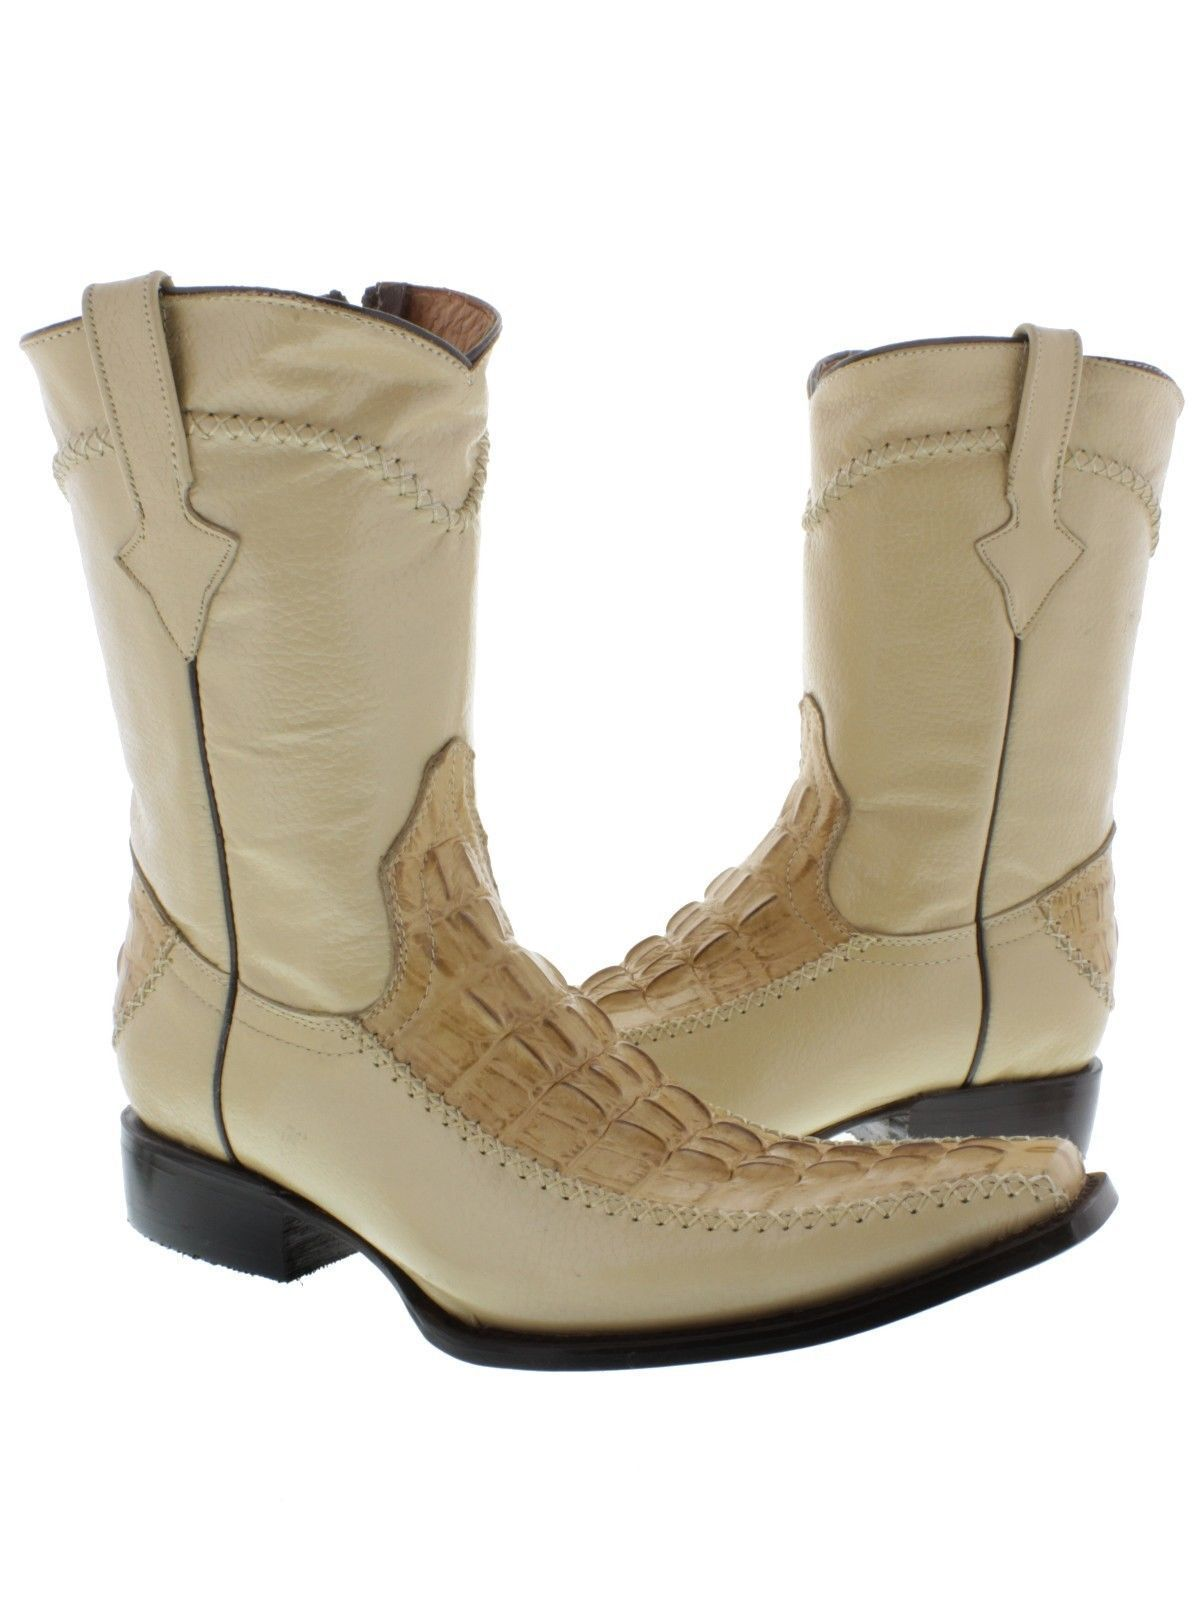 Mens Sand Crocodile Western Cowboy Boots Zipper Style Tail Cut Pattern Square